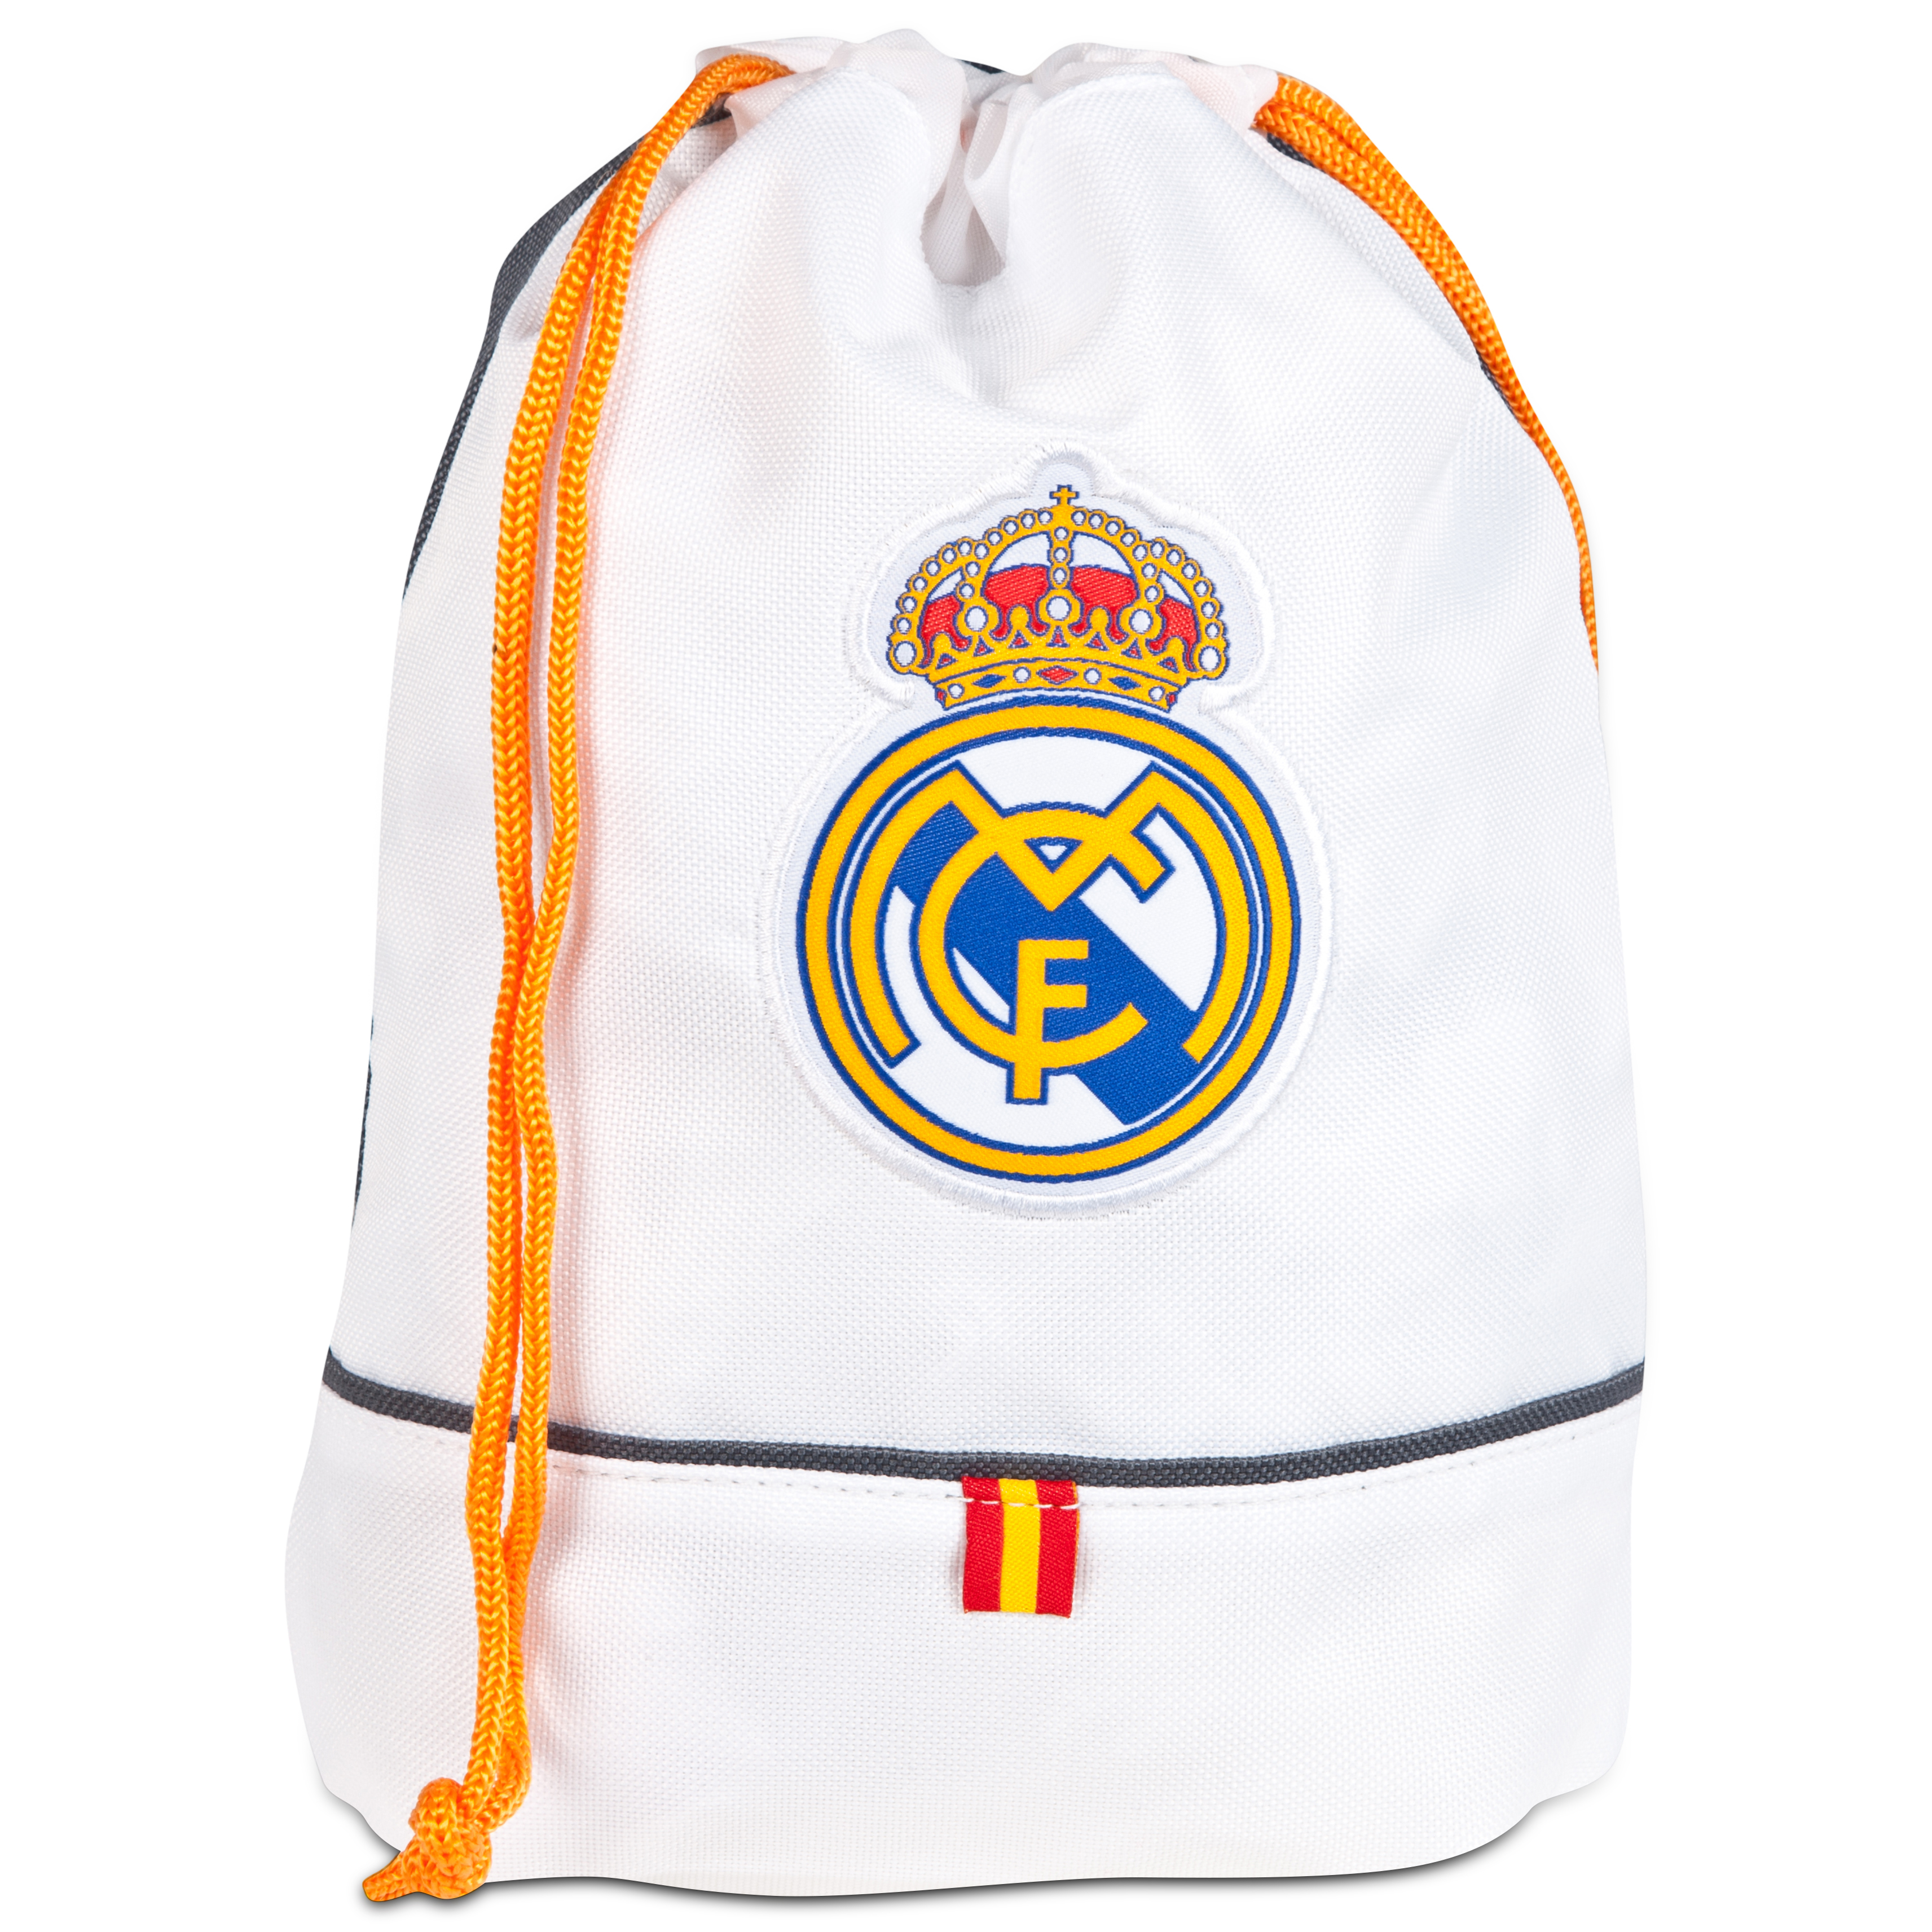 Real Madrid Lunch Bag - 200 x 250mm